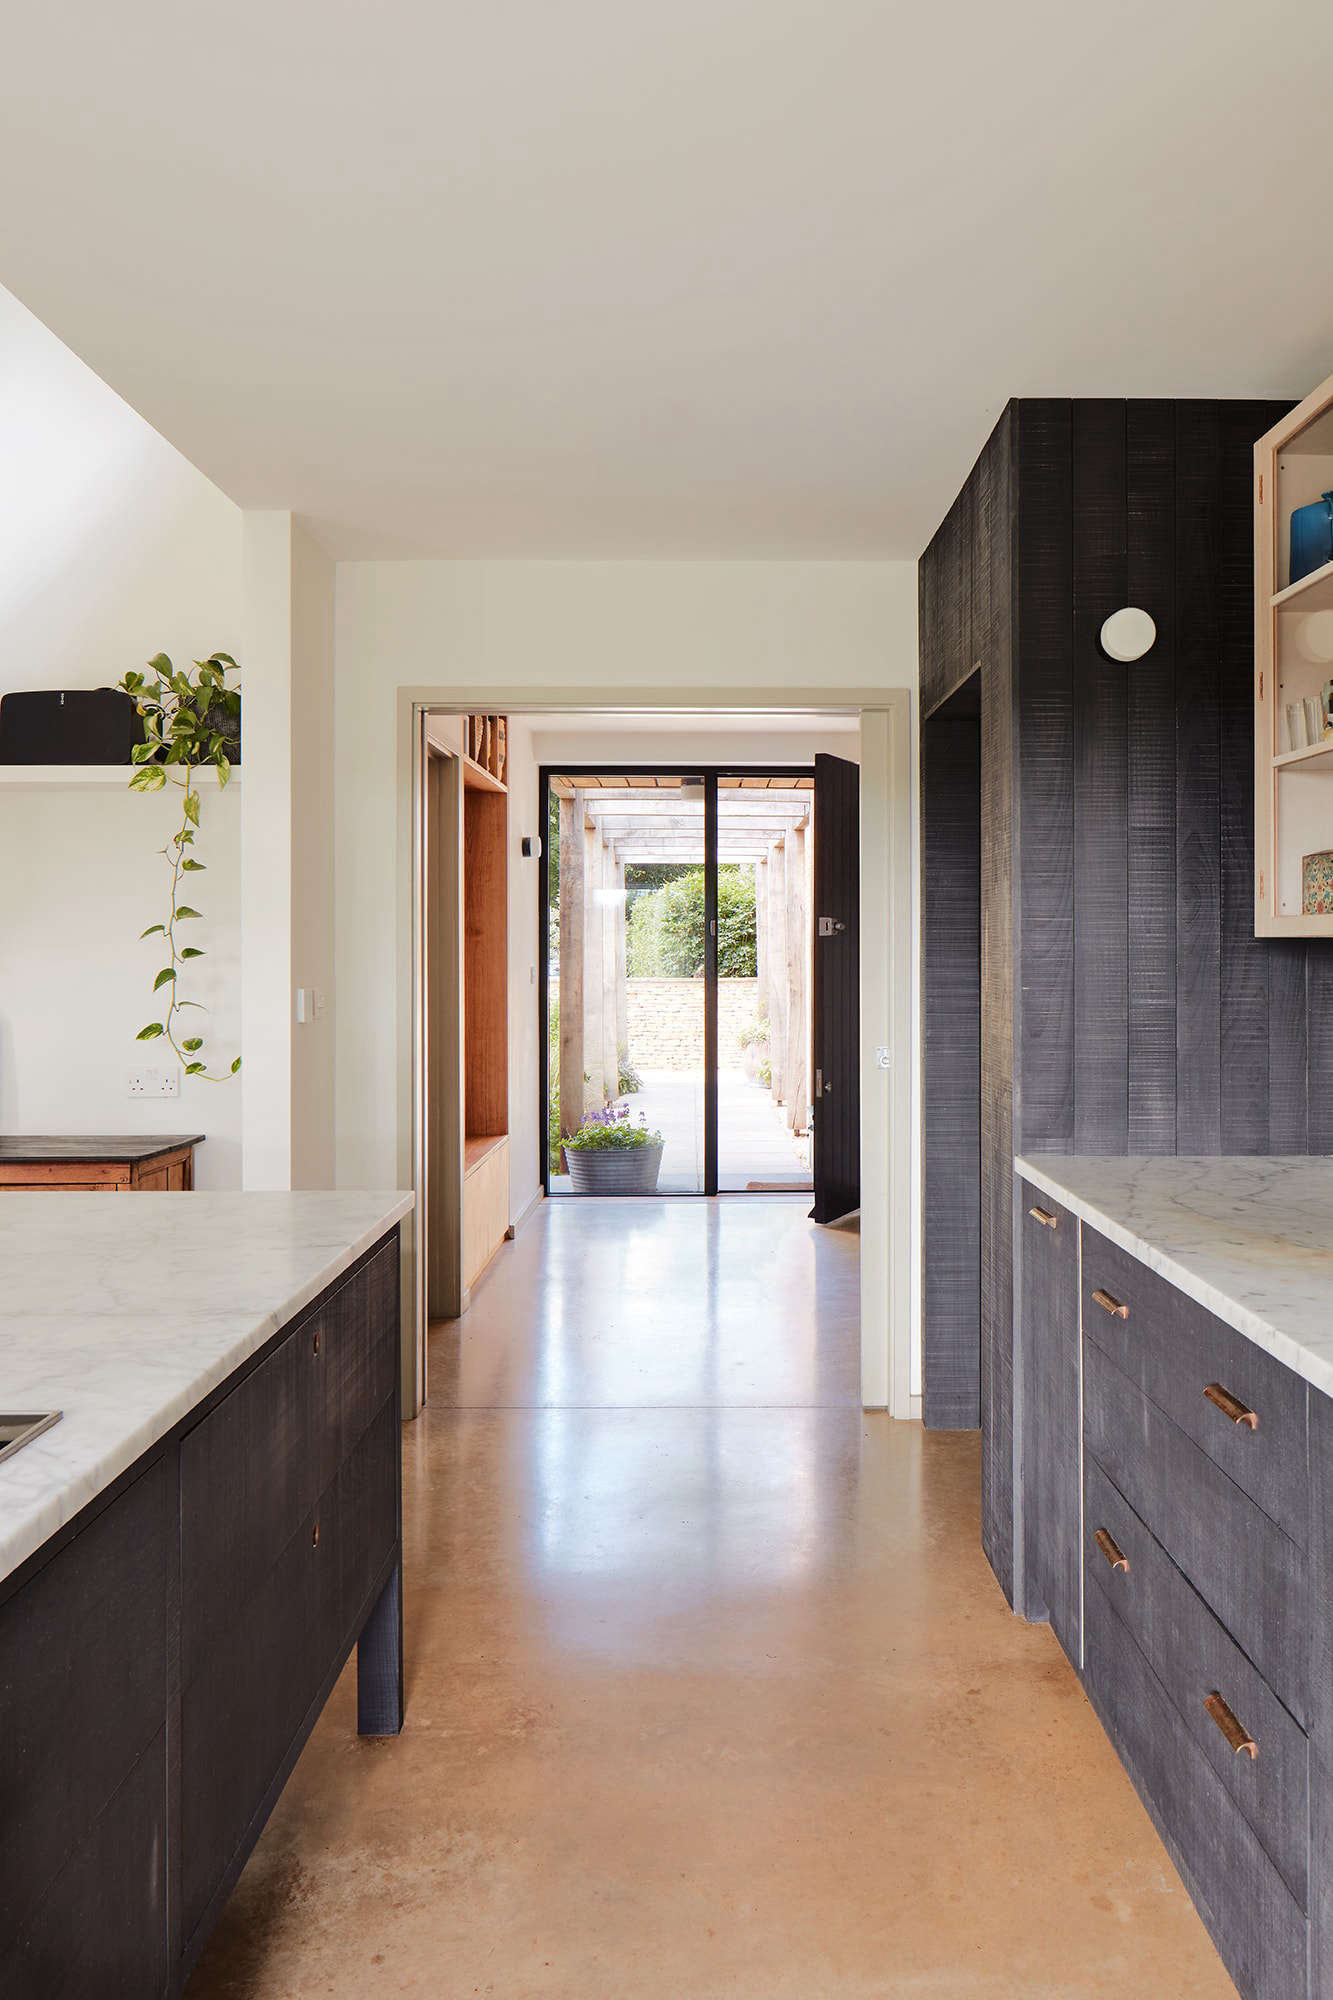 The view toward the front door. The cabinets are by deVOL. The concrete flooring on the first level is original to the home.